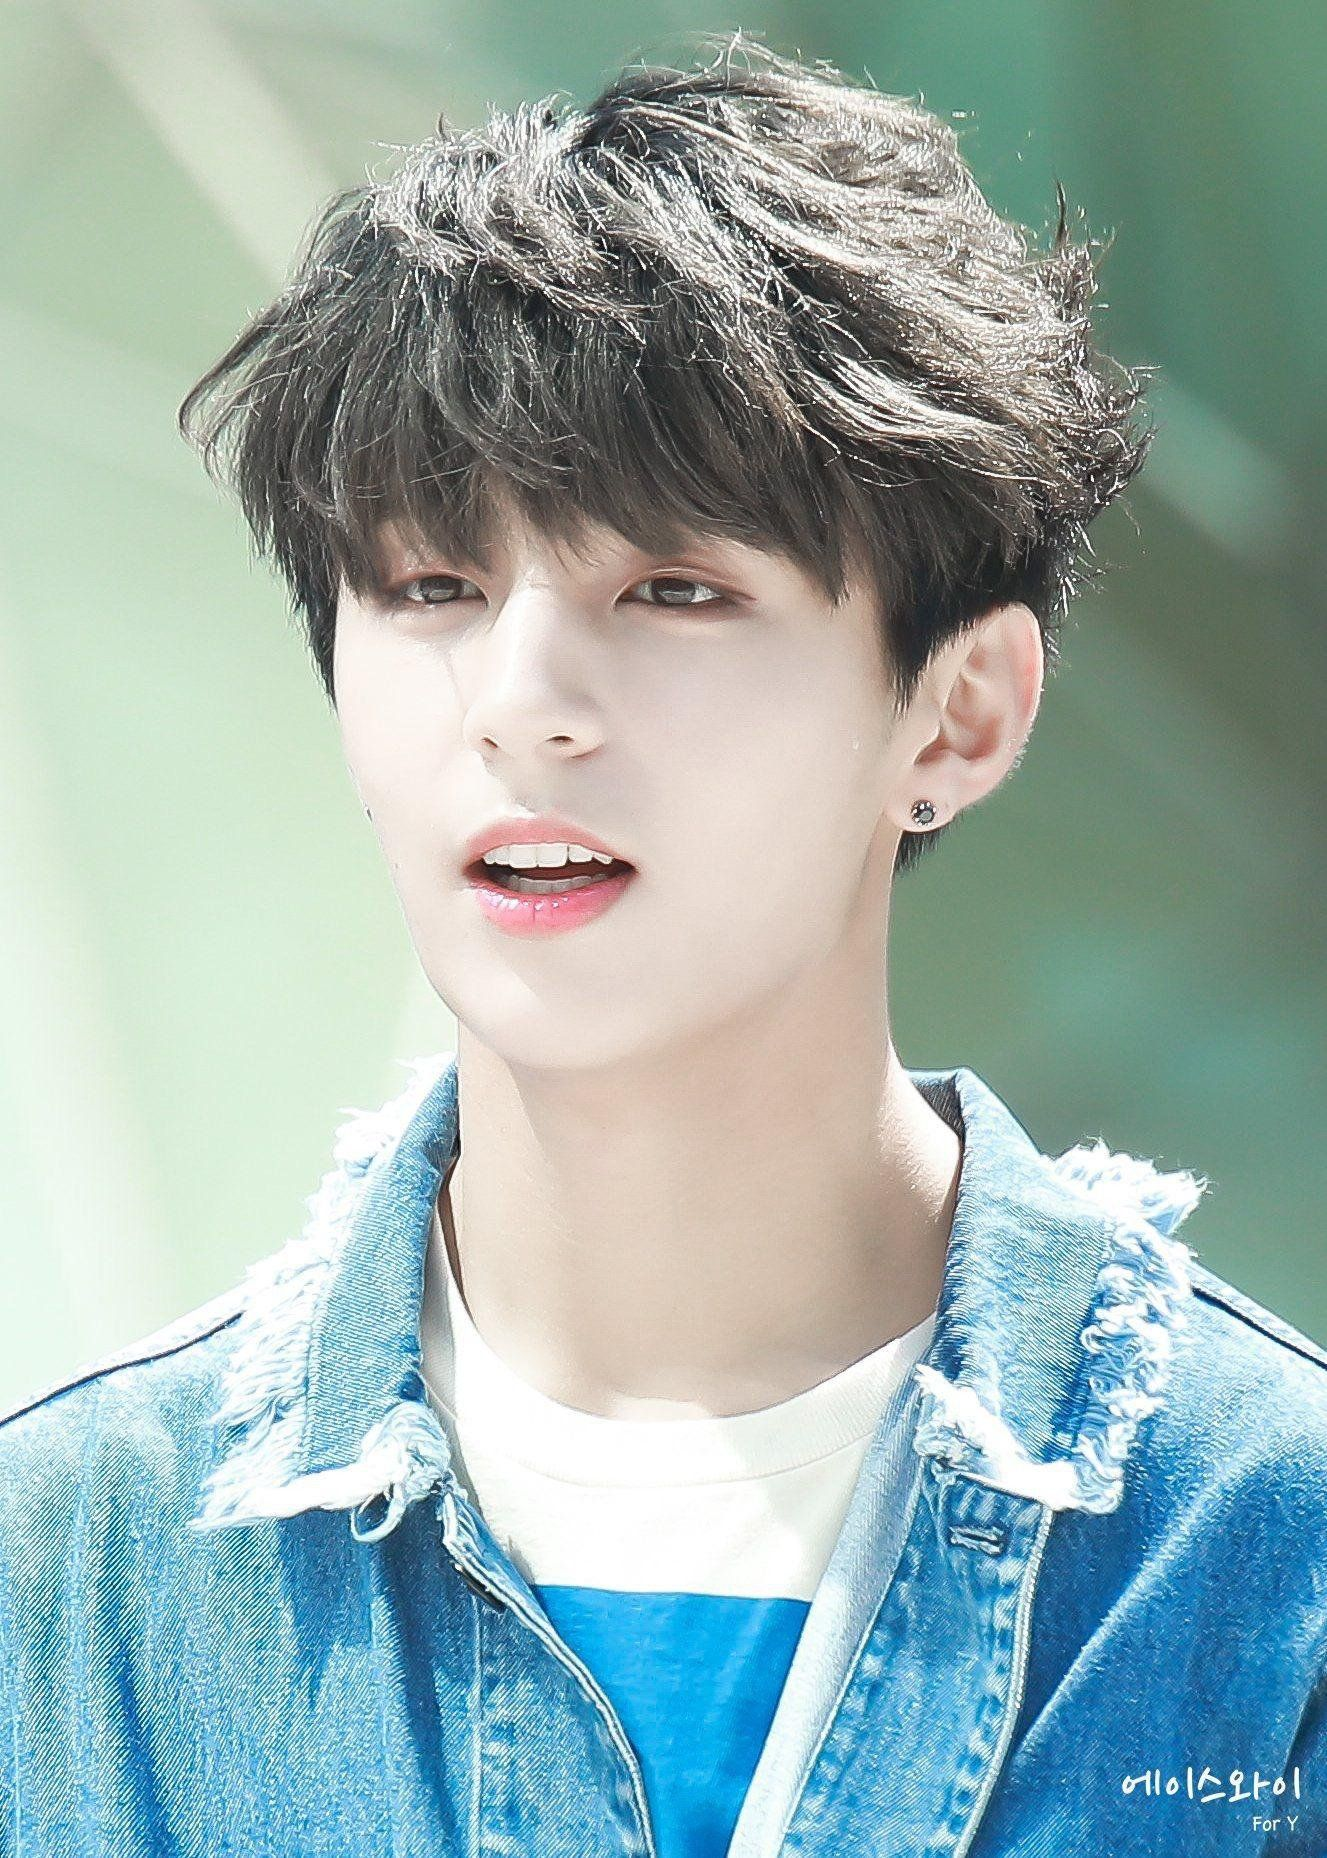 Jungkook Hd Wallpapers Posted By Michelle Peltier